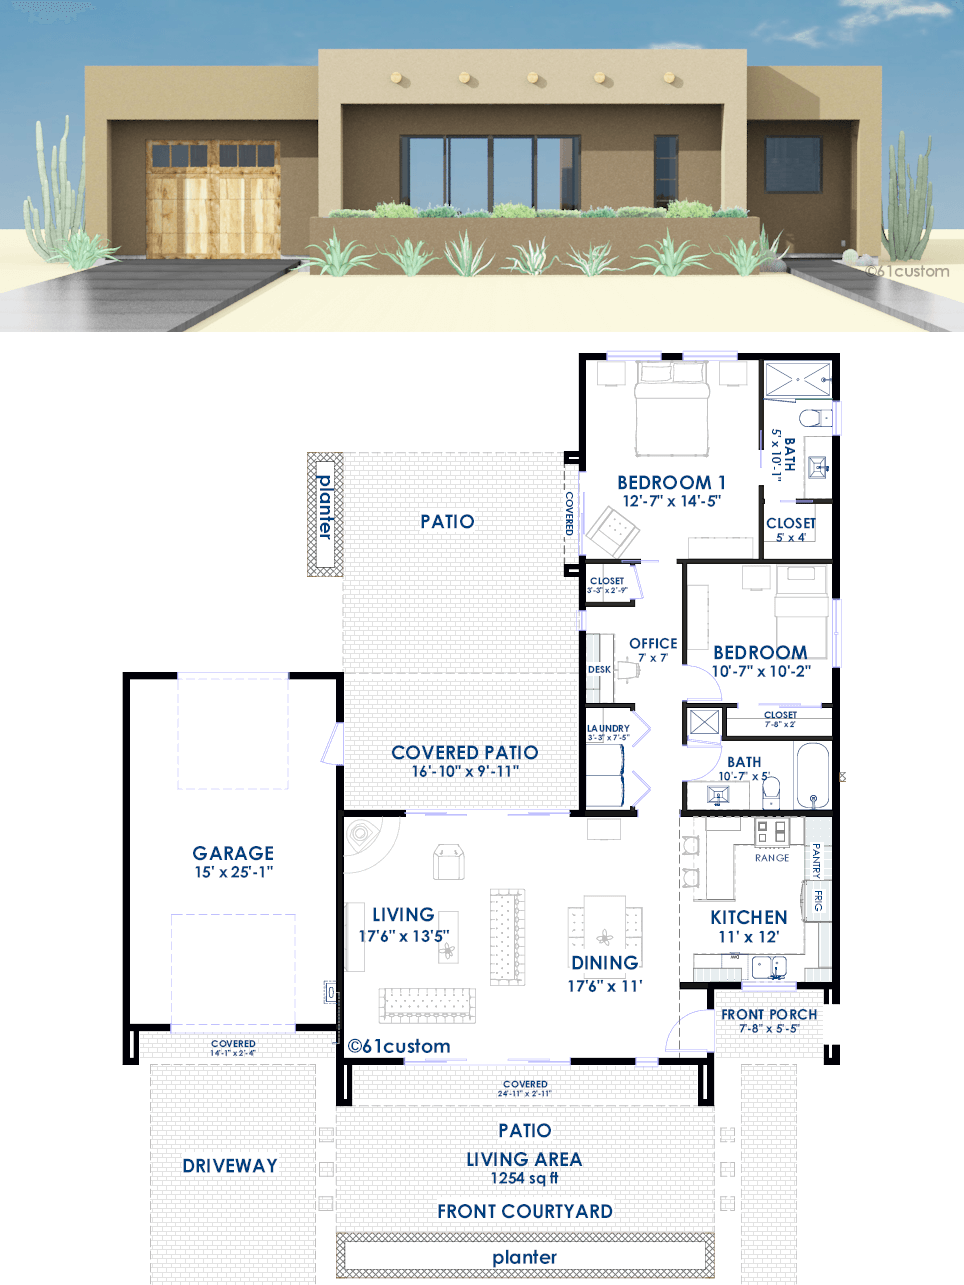 modern one bedroom house plans contemporary adobe house plan 61custom contemporary 19275